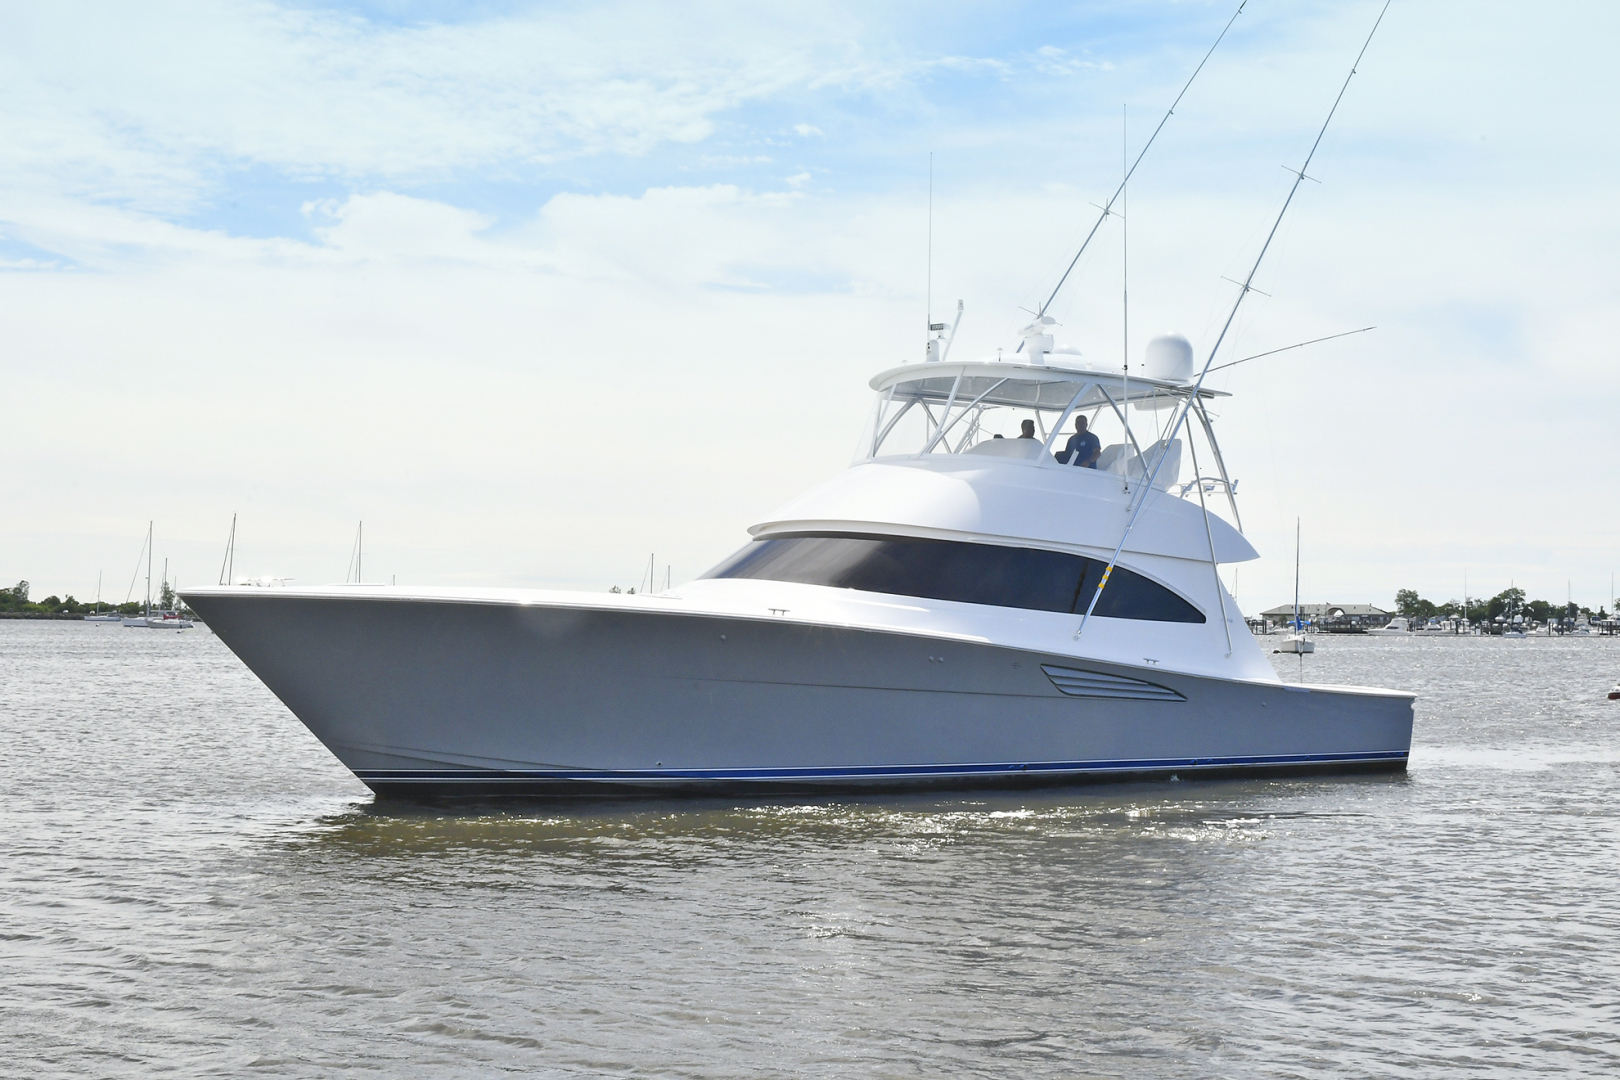 Viking 58 Convertible yacht for sale in montauk